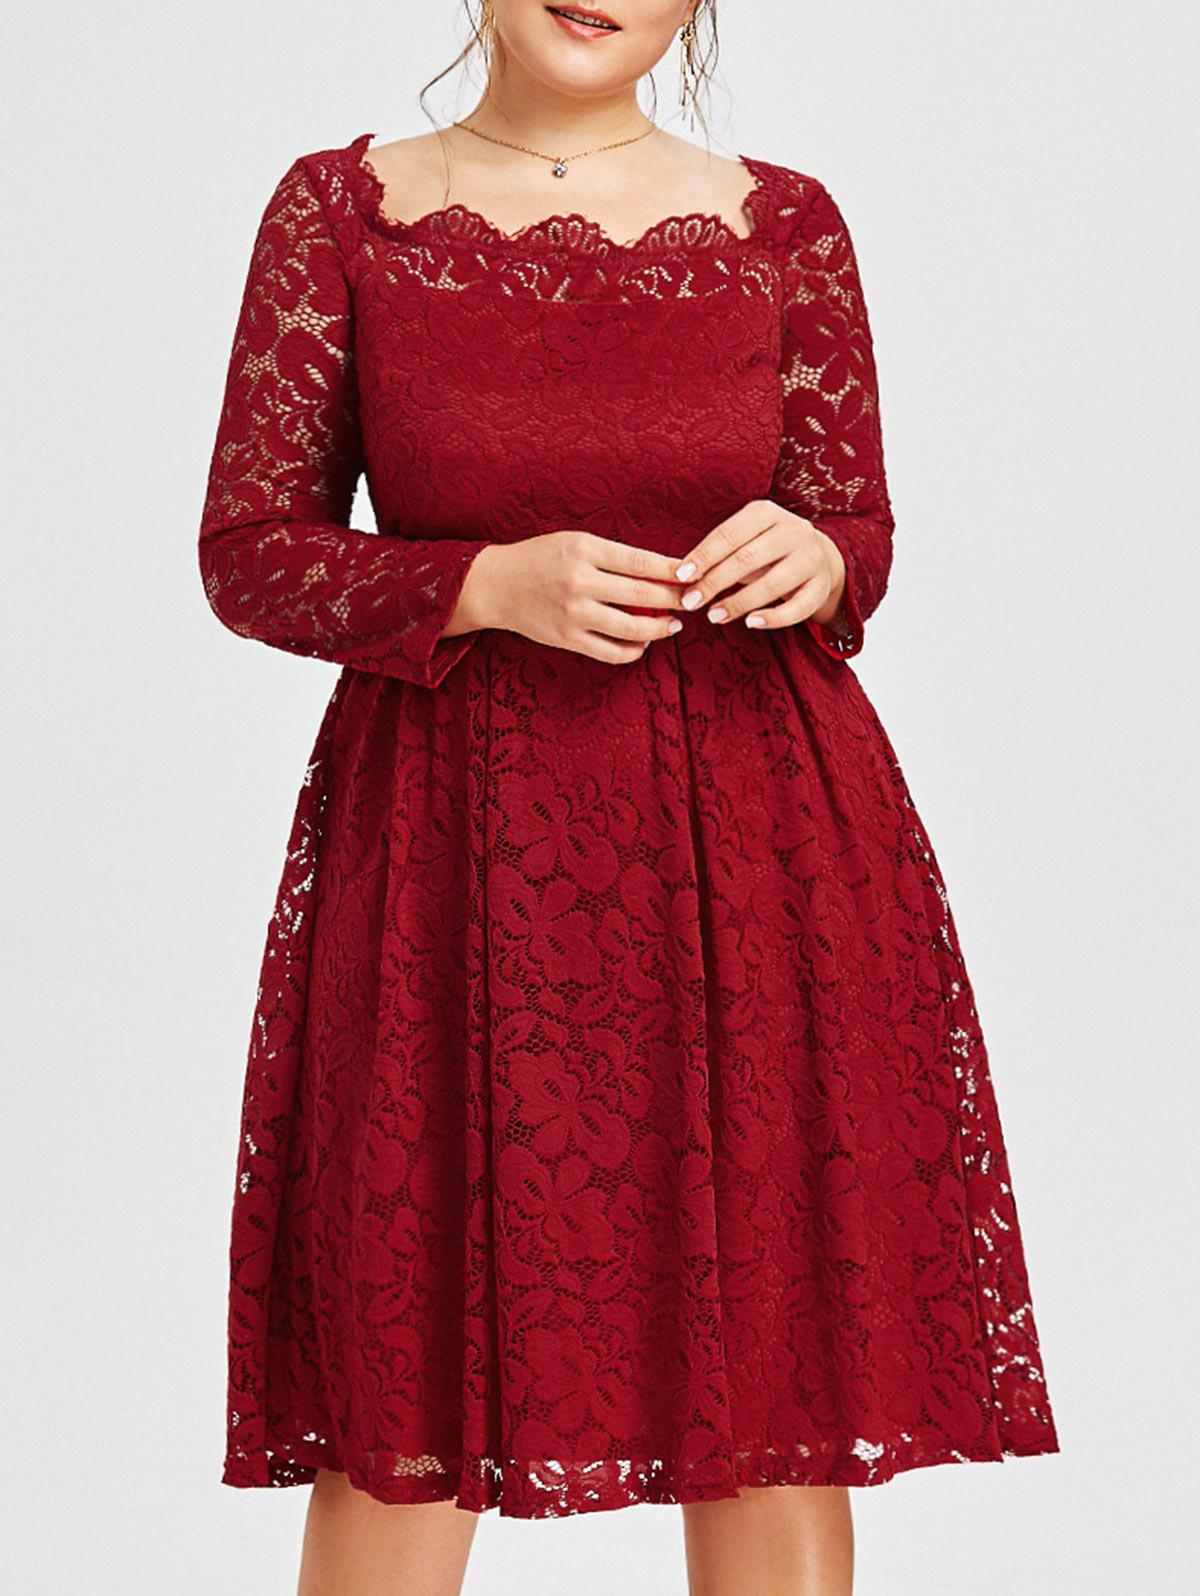 2018 Square Neck Lace Plus Size Formal Dress In Wine Red Xl ...